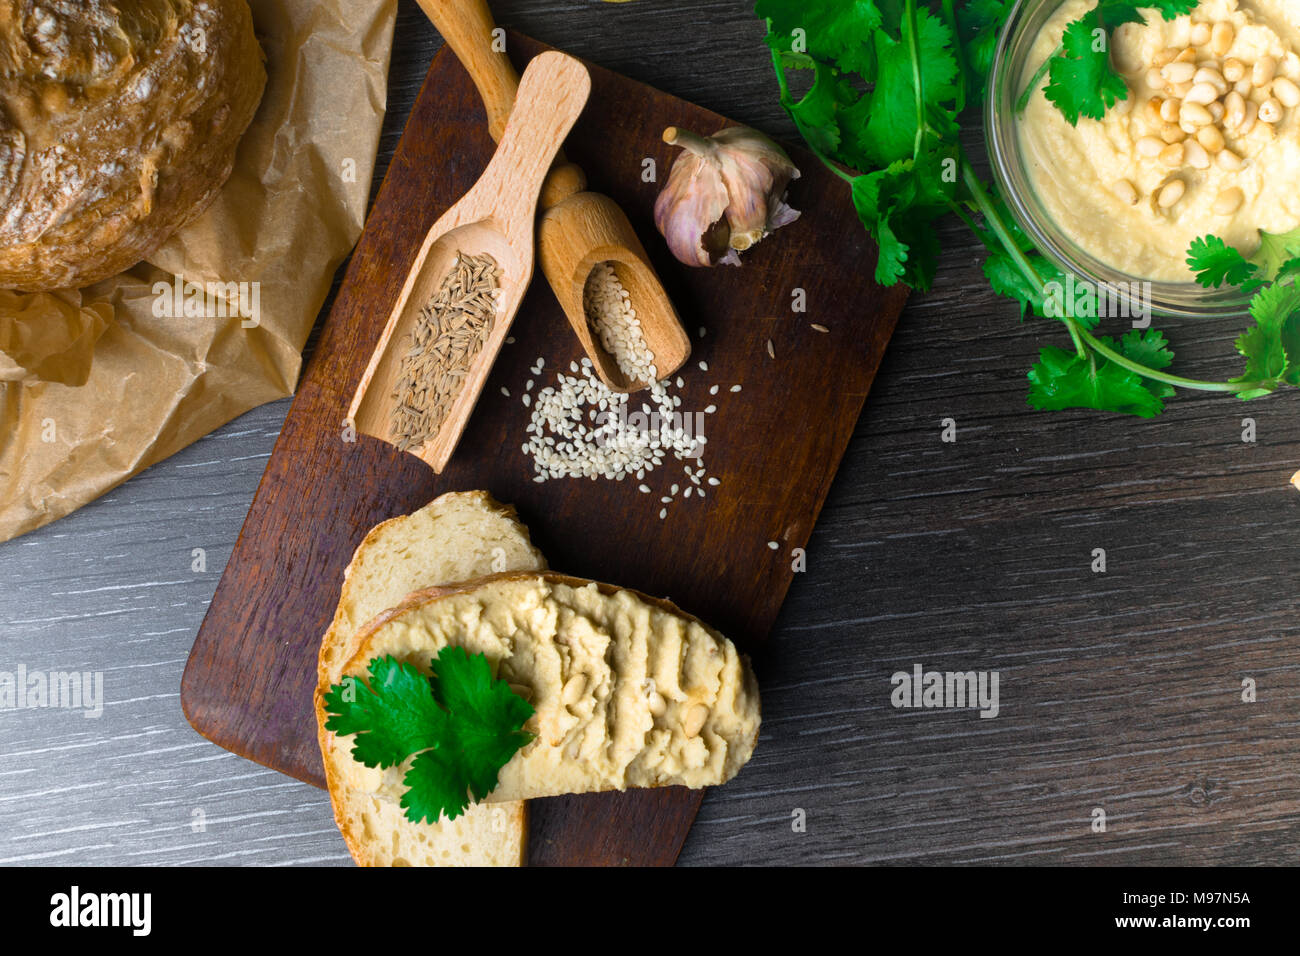 Traditional Hummus or houmous, appetizer made of mashed chickpeas with tahini, lemon, garlic, olive oil, parsley, cumin and cedar nuts on wooden table. Healthy lifestyle and eating right concept - Stock Image